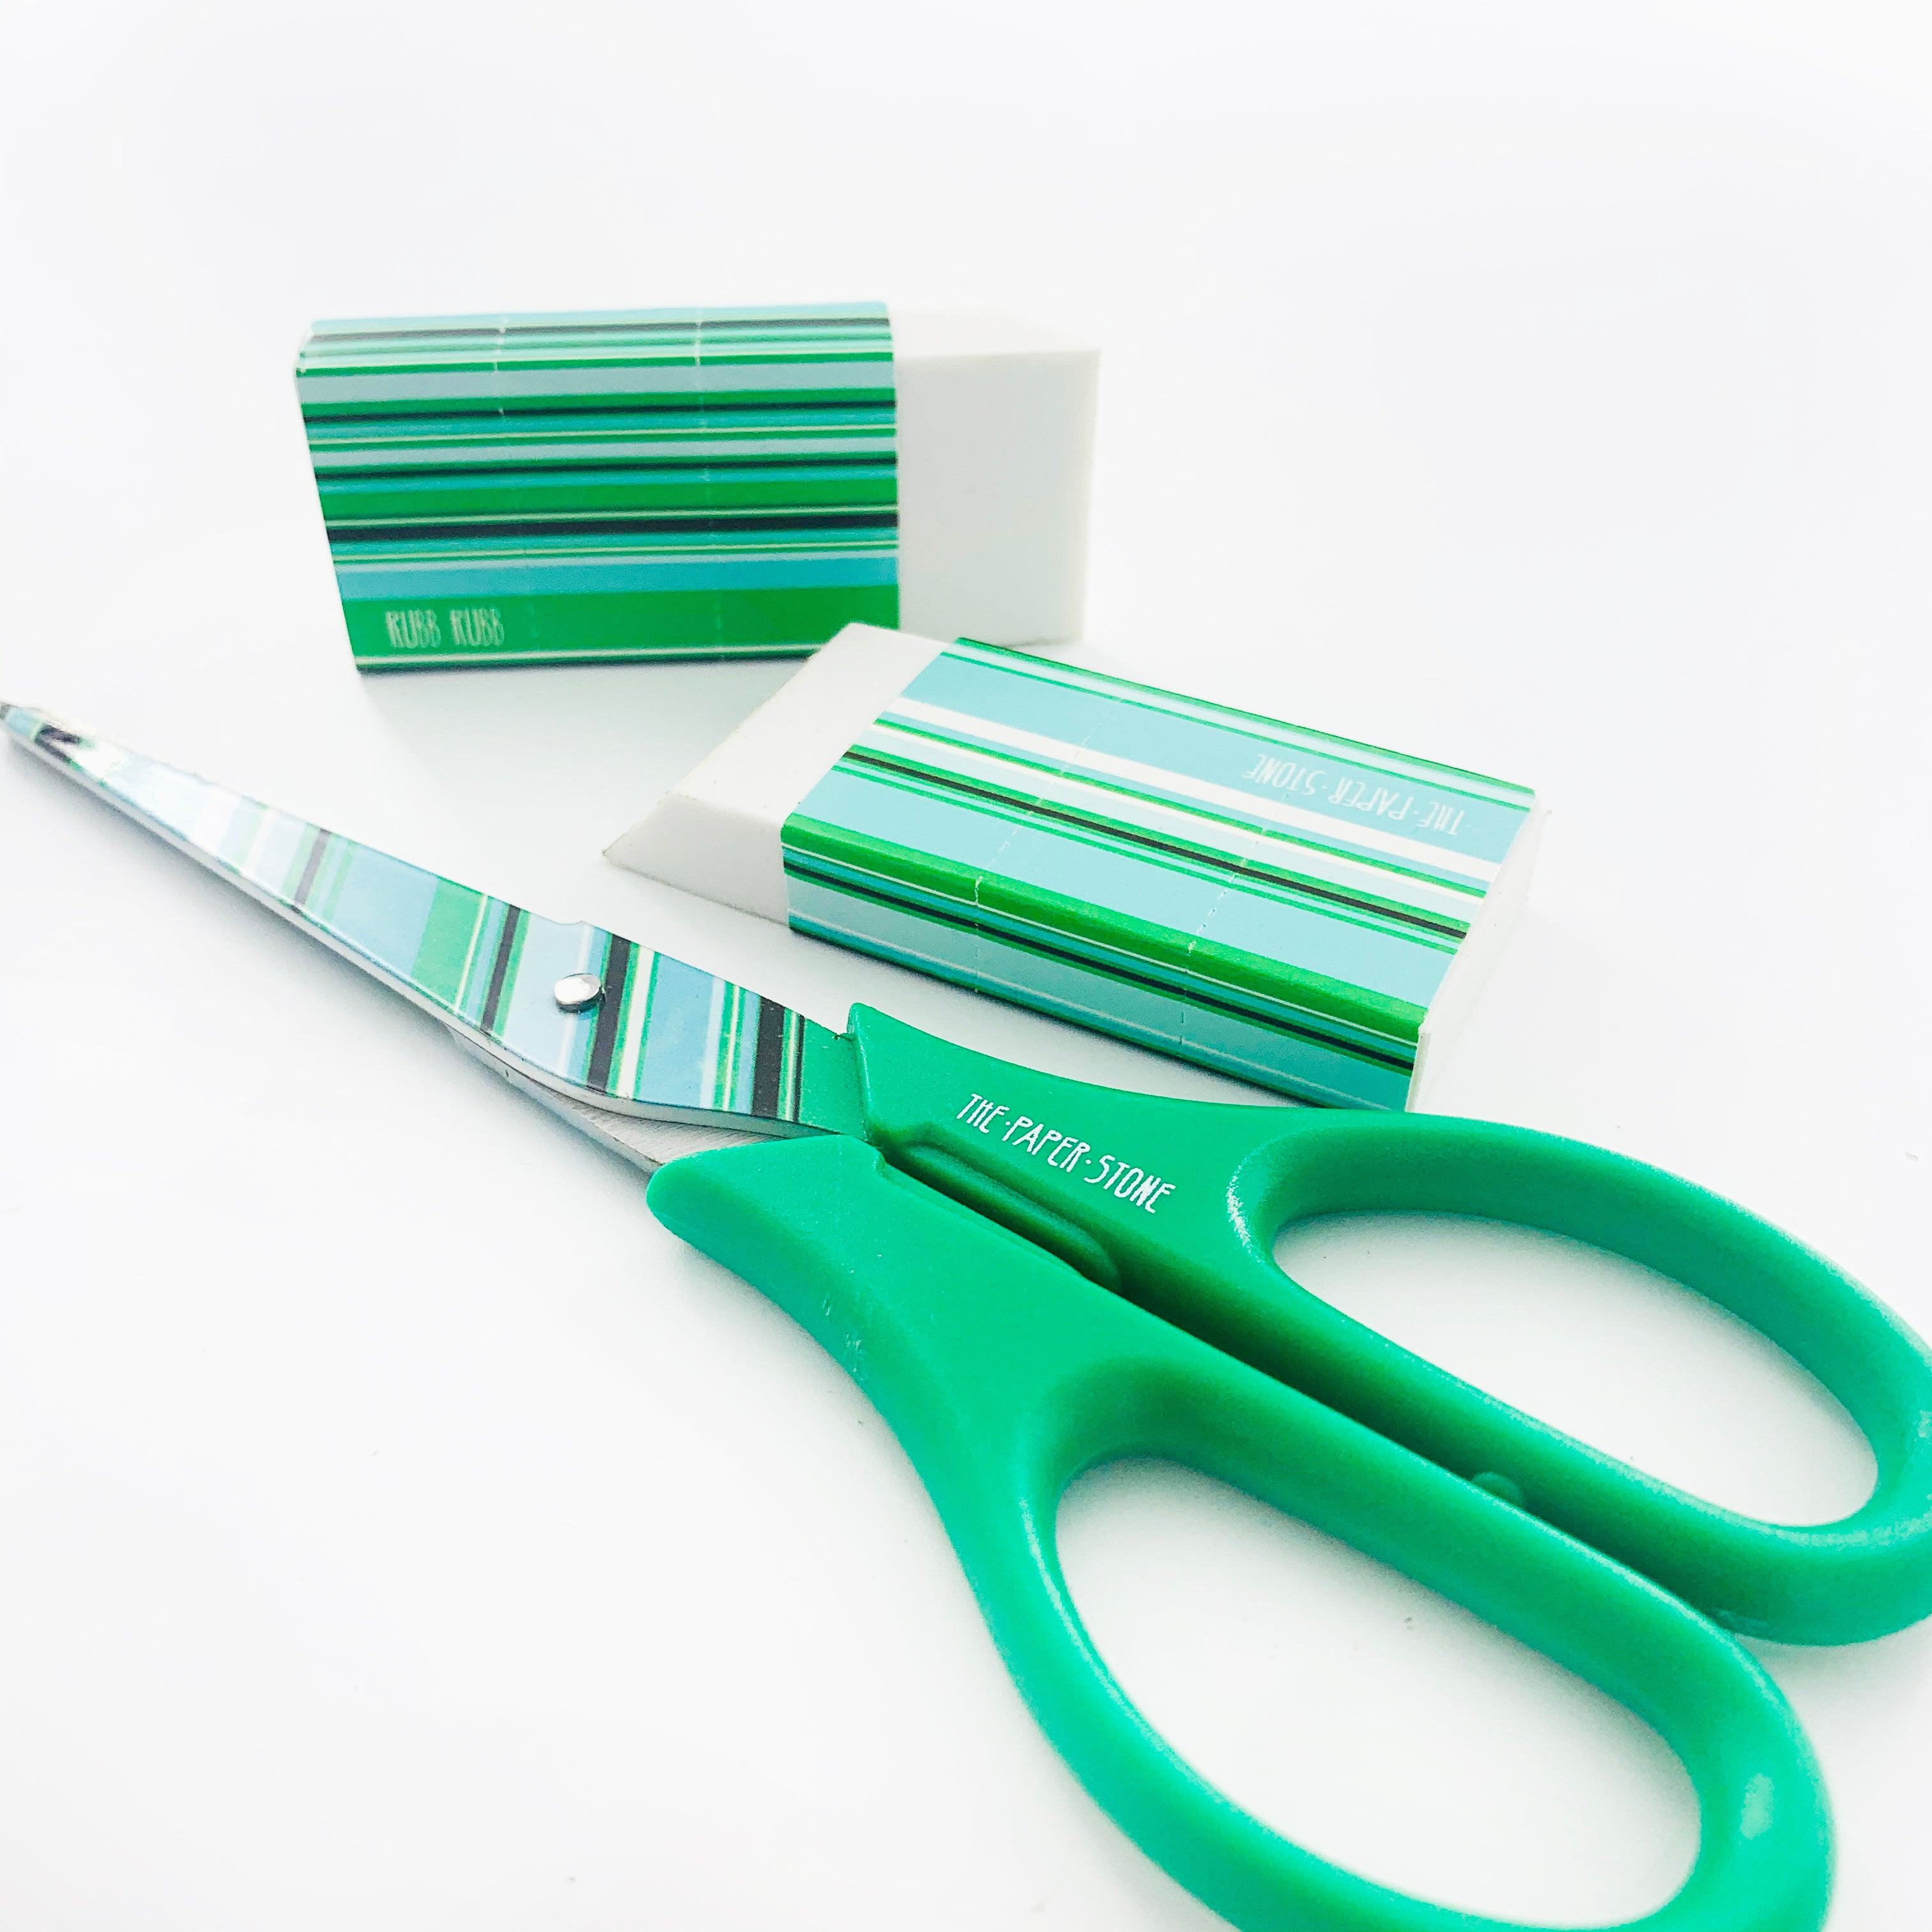 Stationery Set - Green